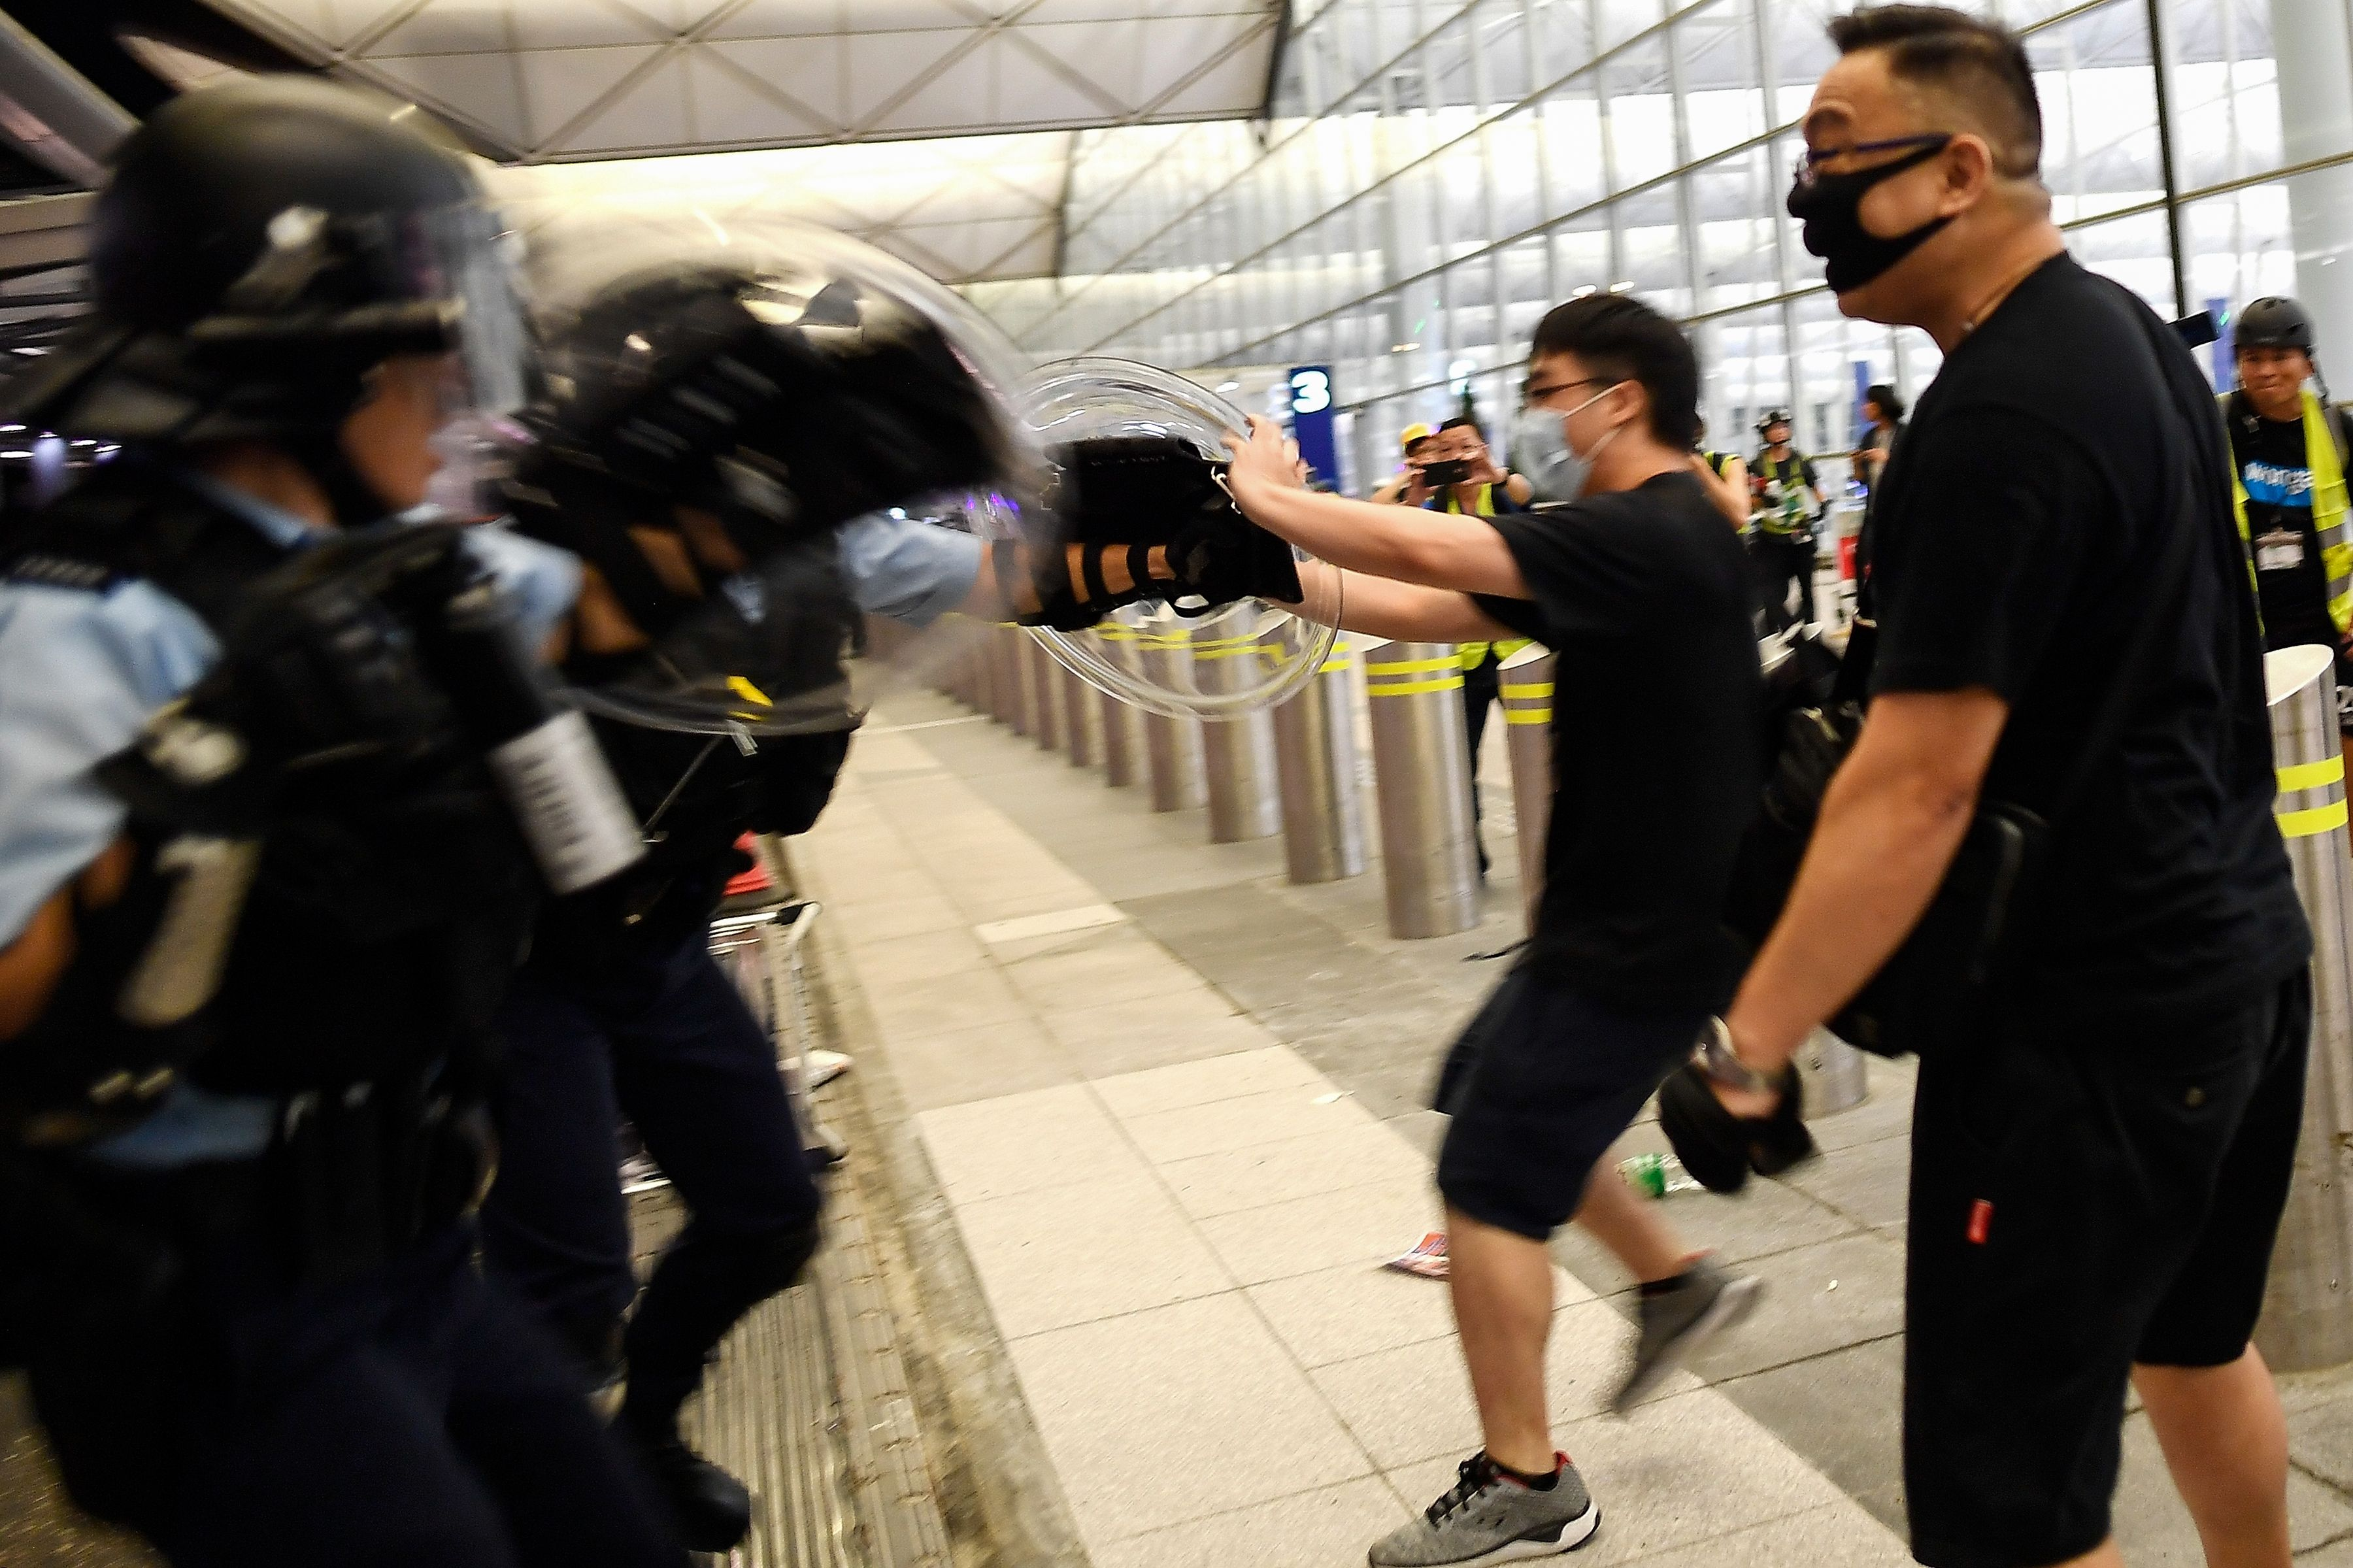 Police scuffle with pro-democracy protestors at Hong Kong International Airport on August 13, 2019.